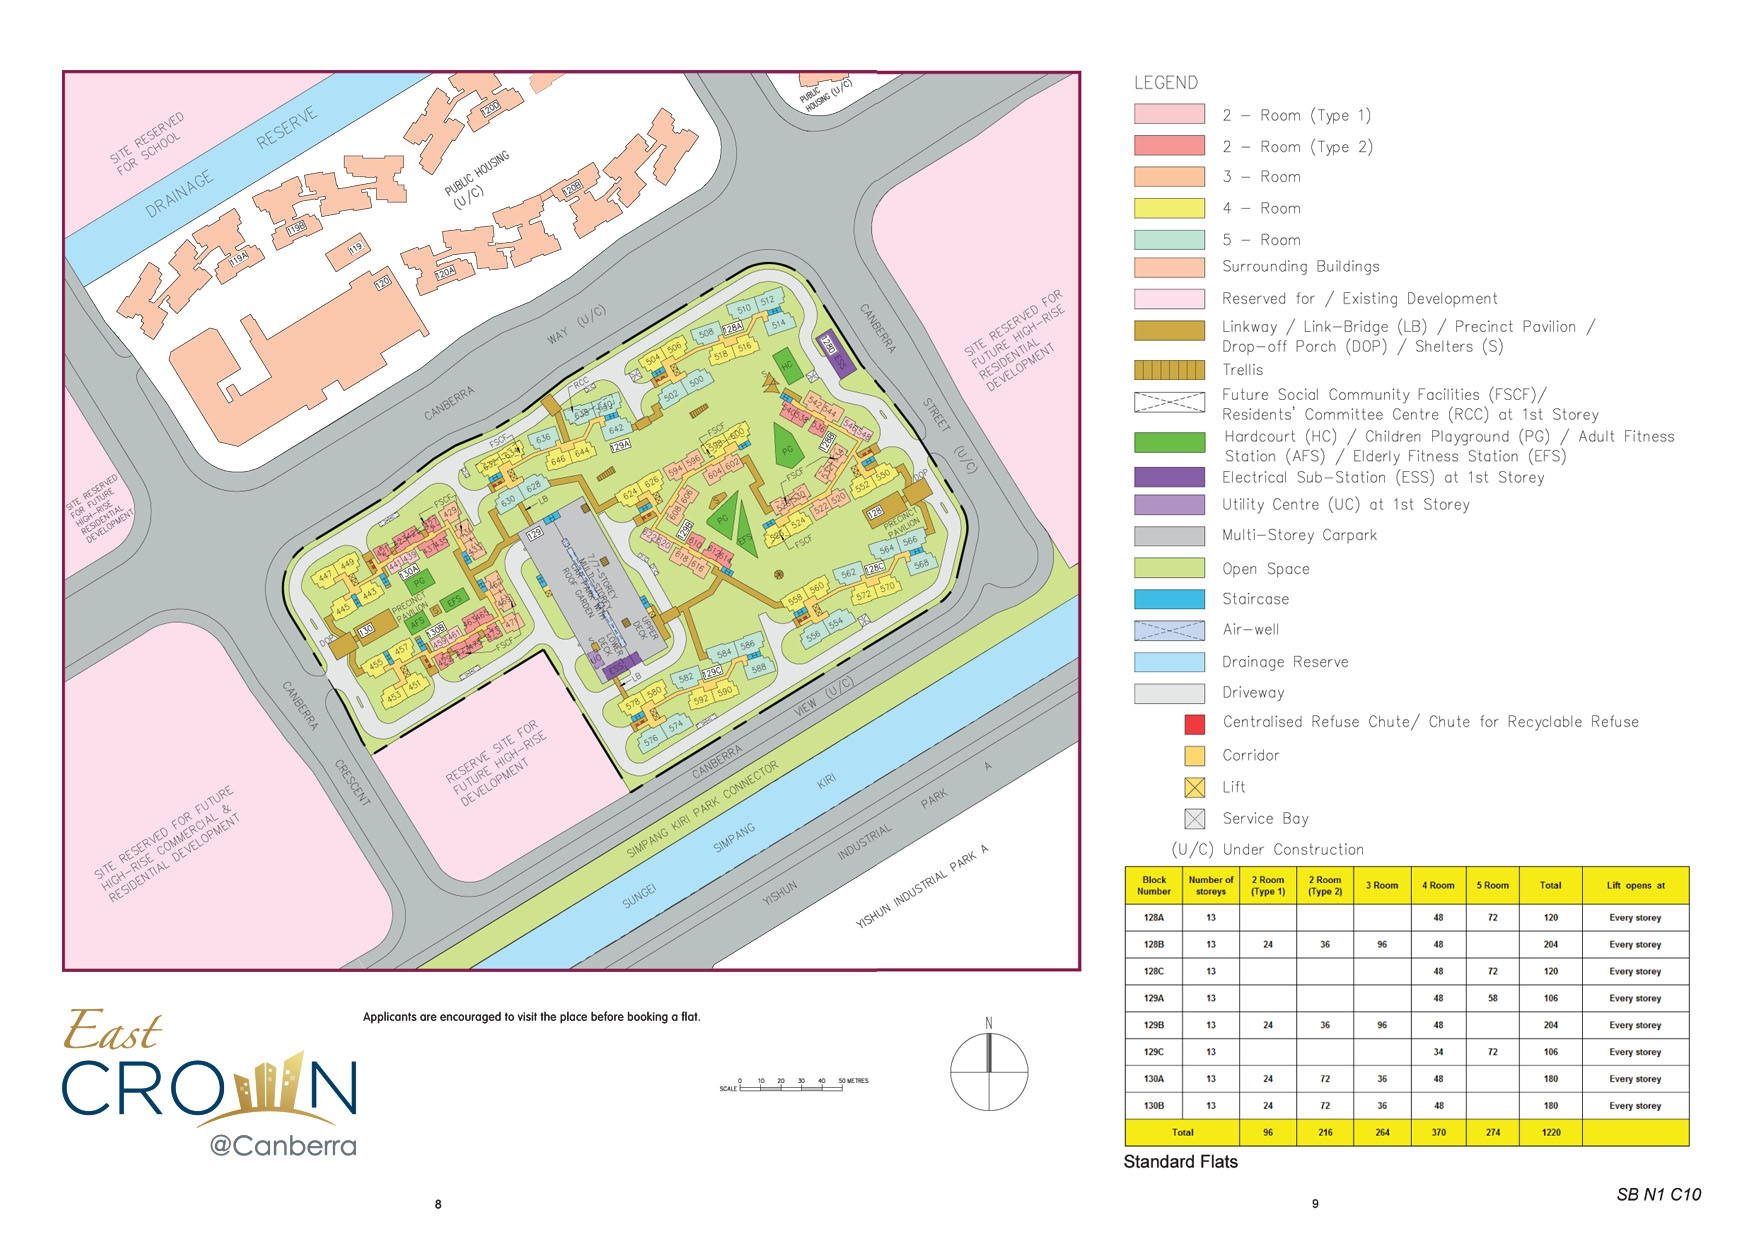 EastCrown @ Canberra Site Plan